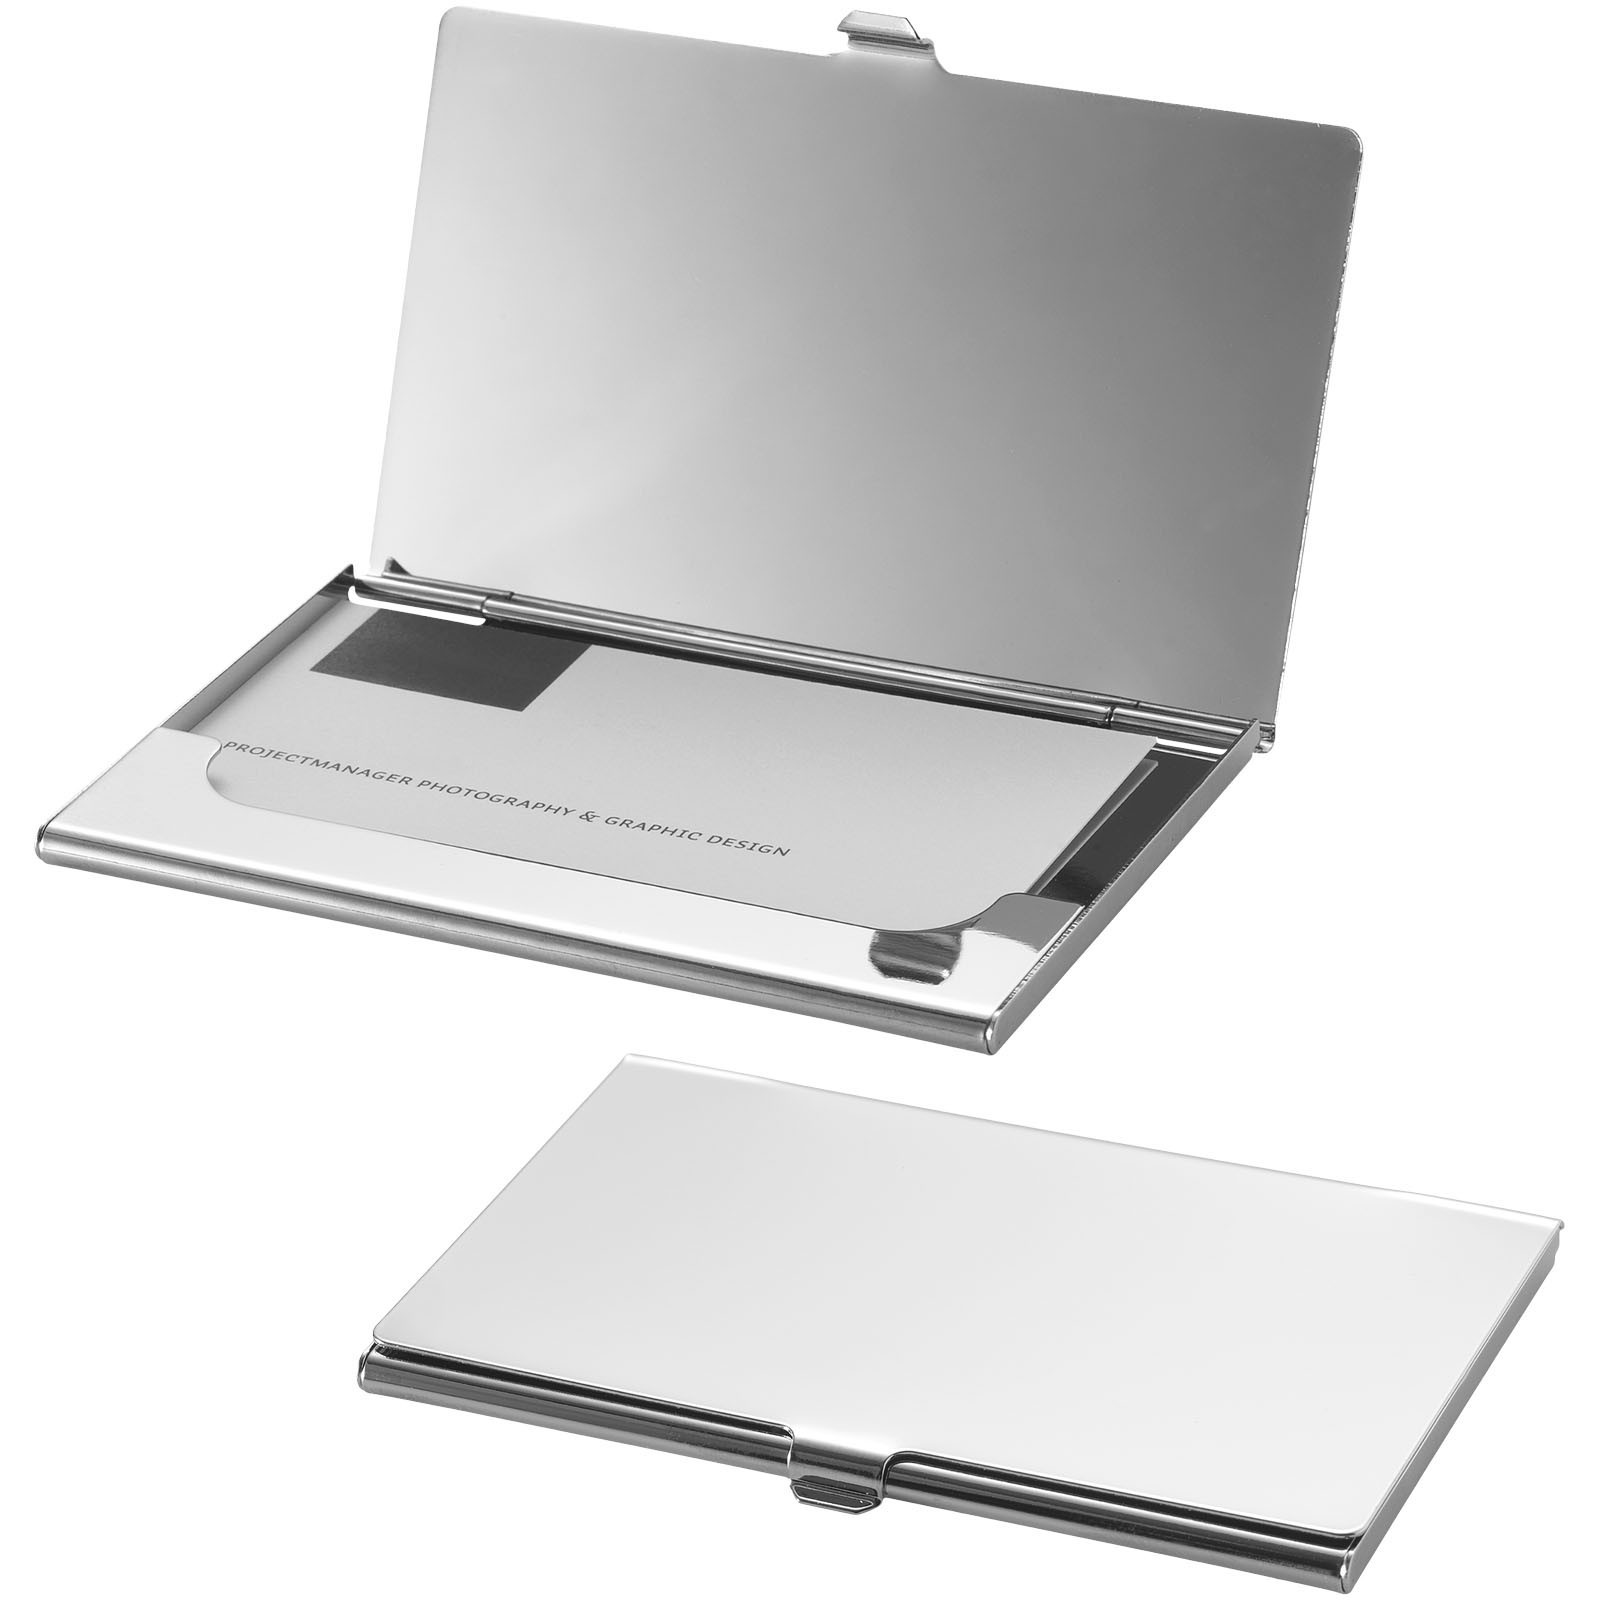 New York business card holder silver Metal business card